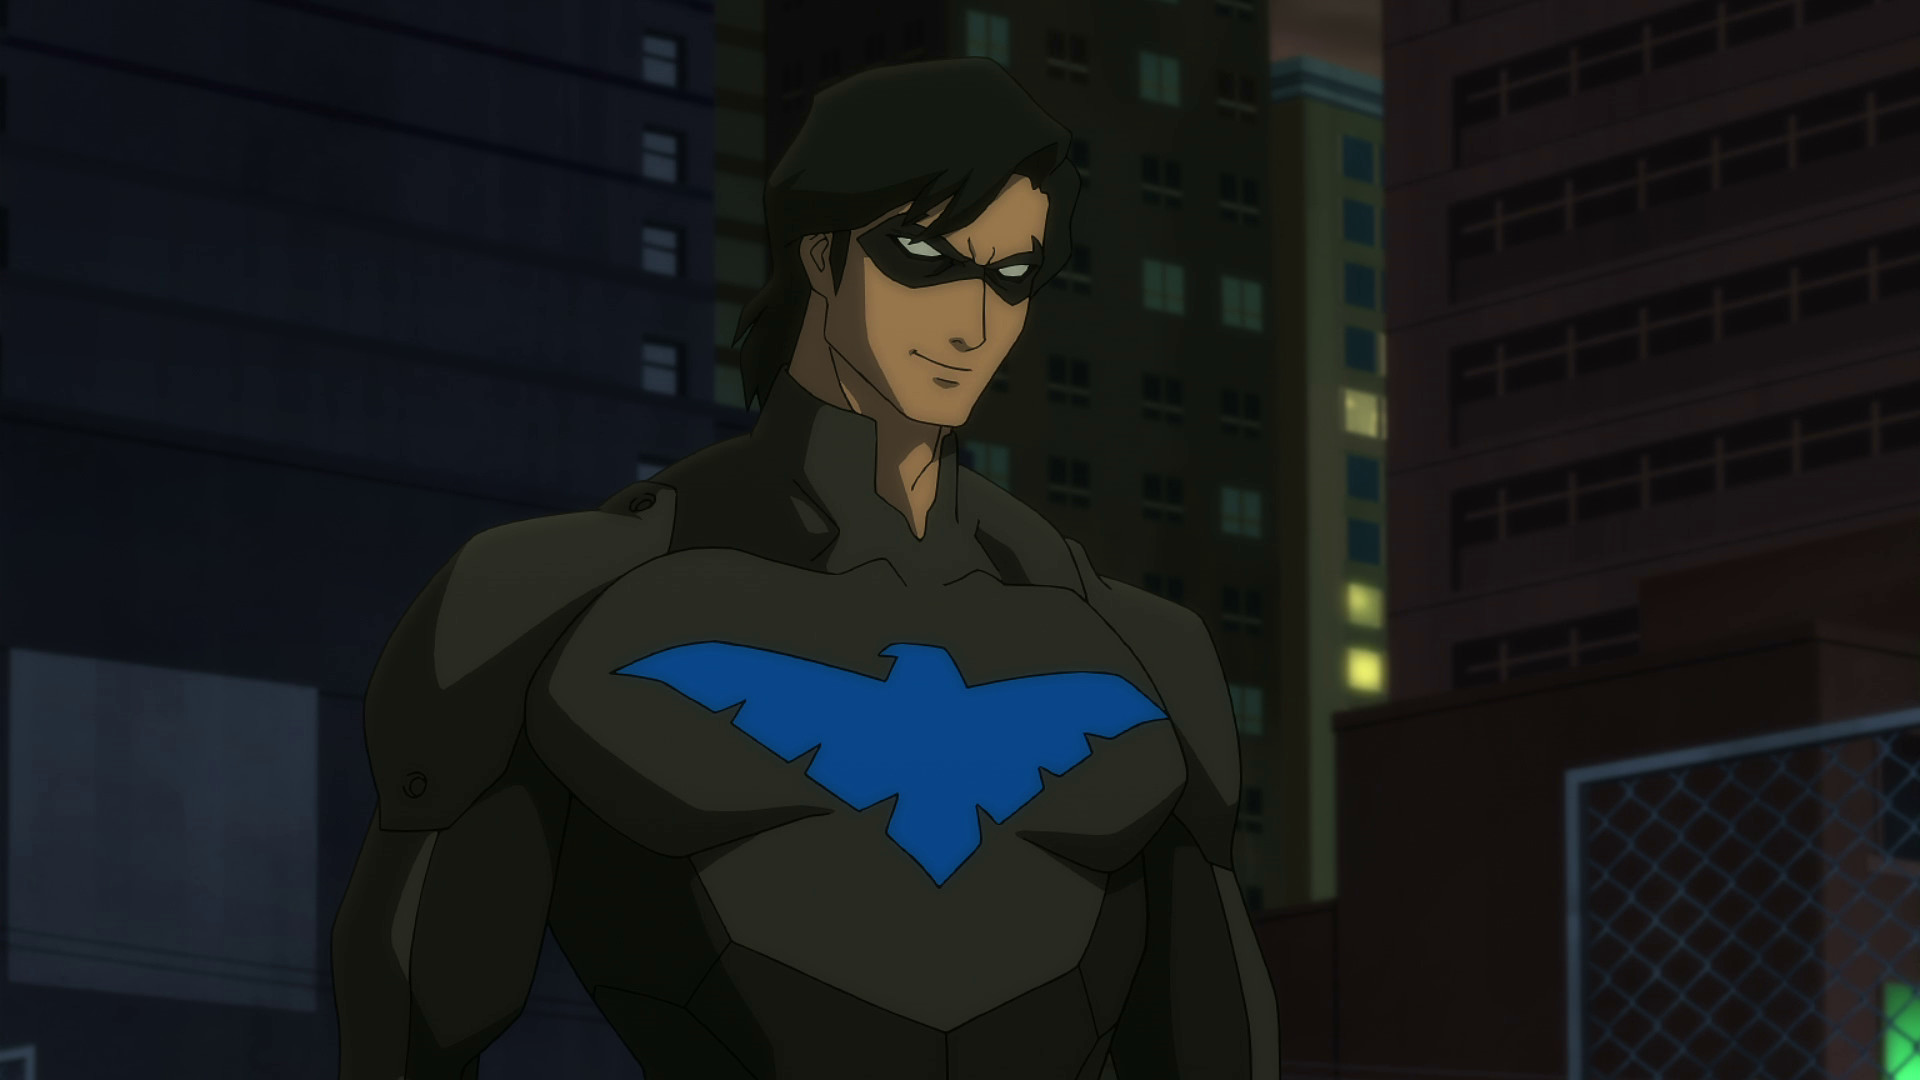 Res: 1920x1080, Nightwing.png